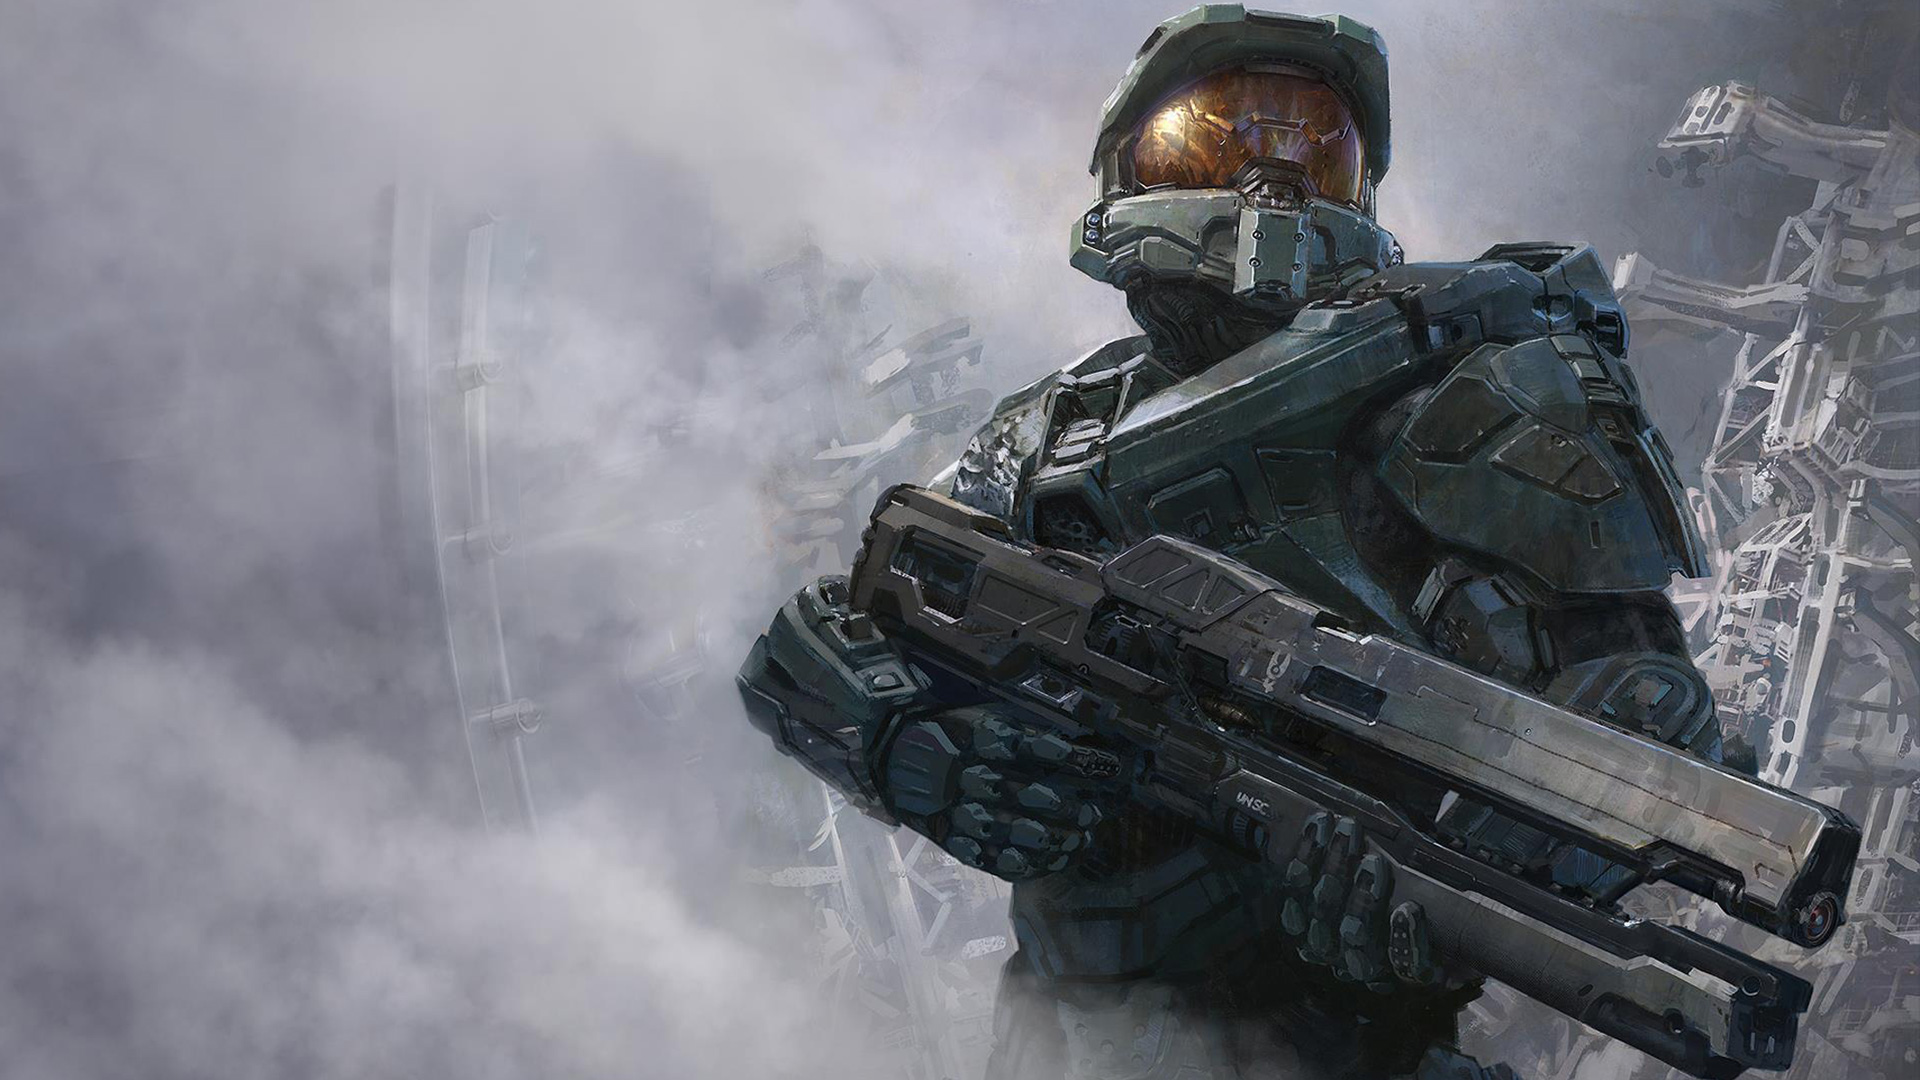 Halo 4 Wallpaper in 1920x1080 1920x1080